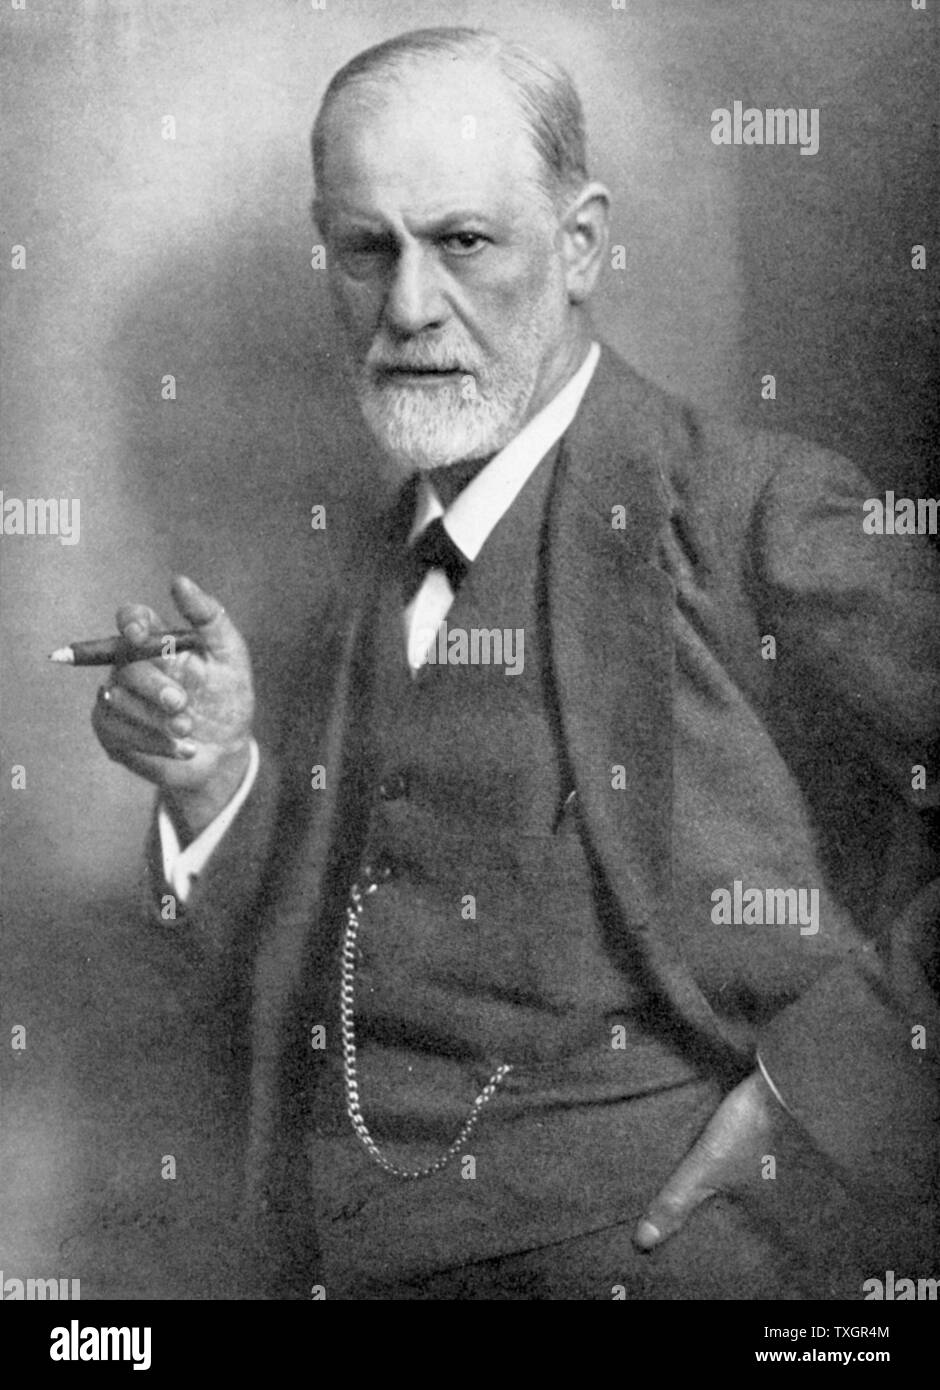 Sigmund Freud ; Austrian neurologist and psychiatrist, he is considered as the father of psychoanalysis. Photographed by Max Halberstadt in 1922. - Stock Image